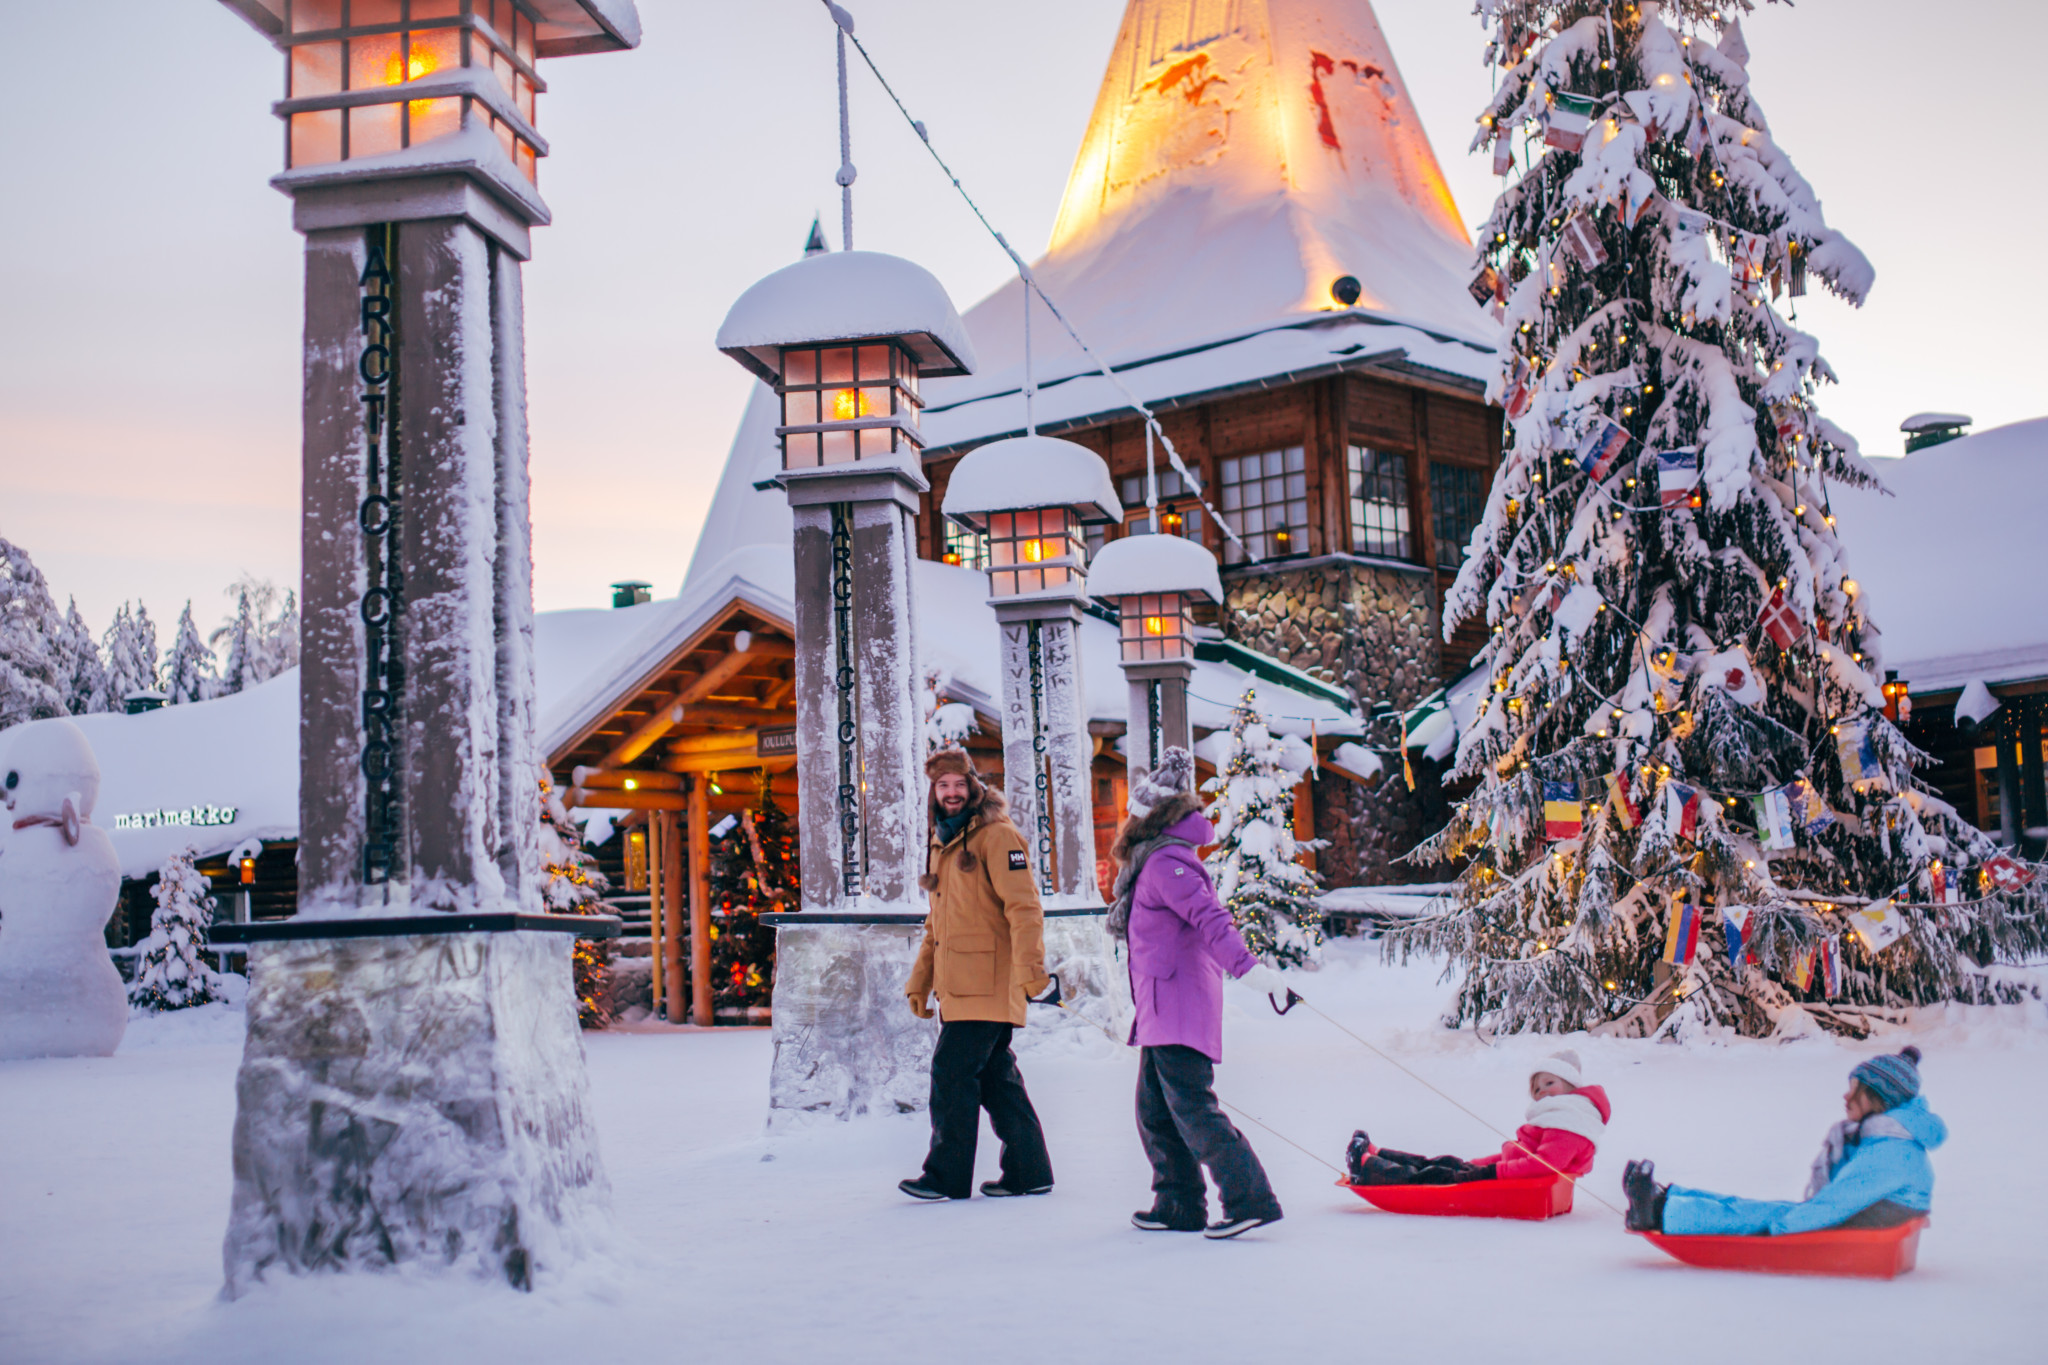 A family crossing the Arctic Circle in Santa Claus Village